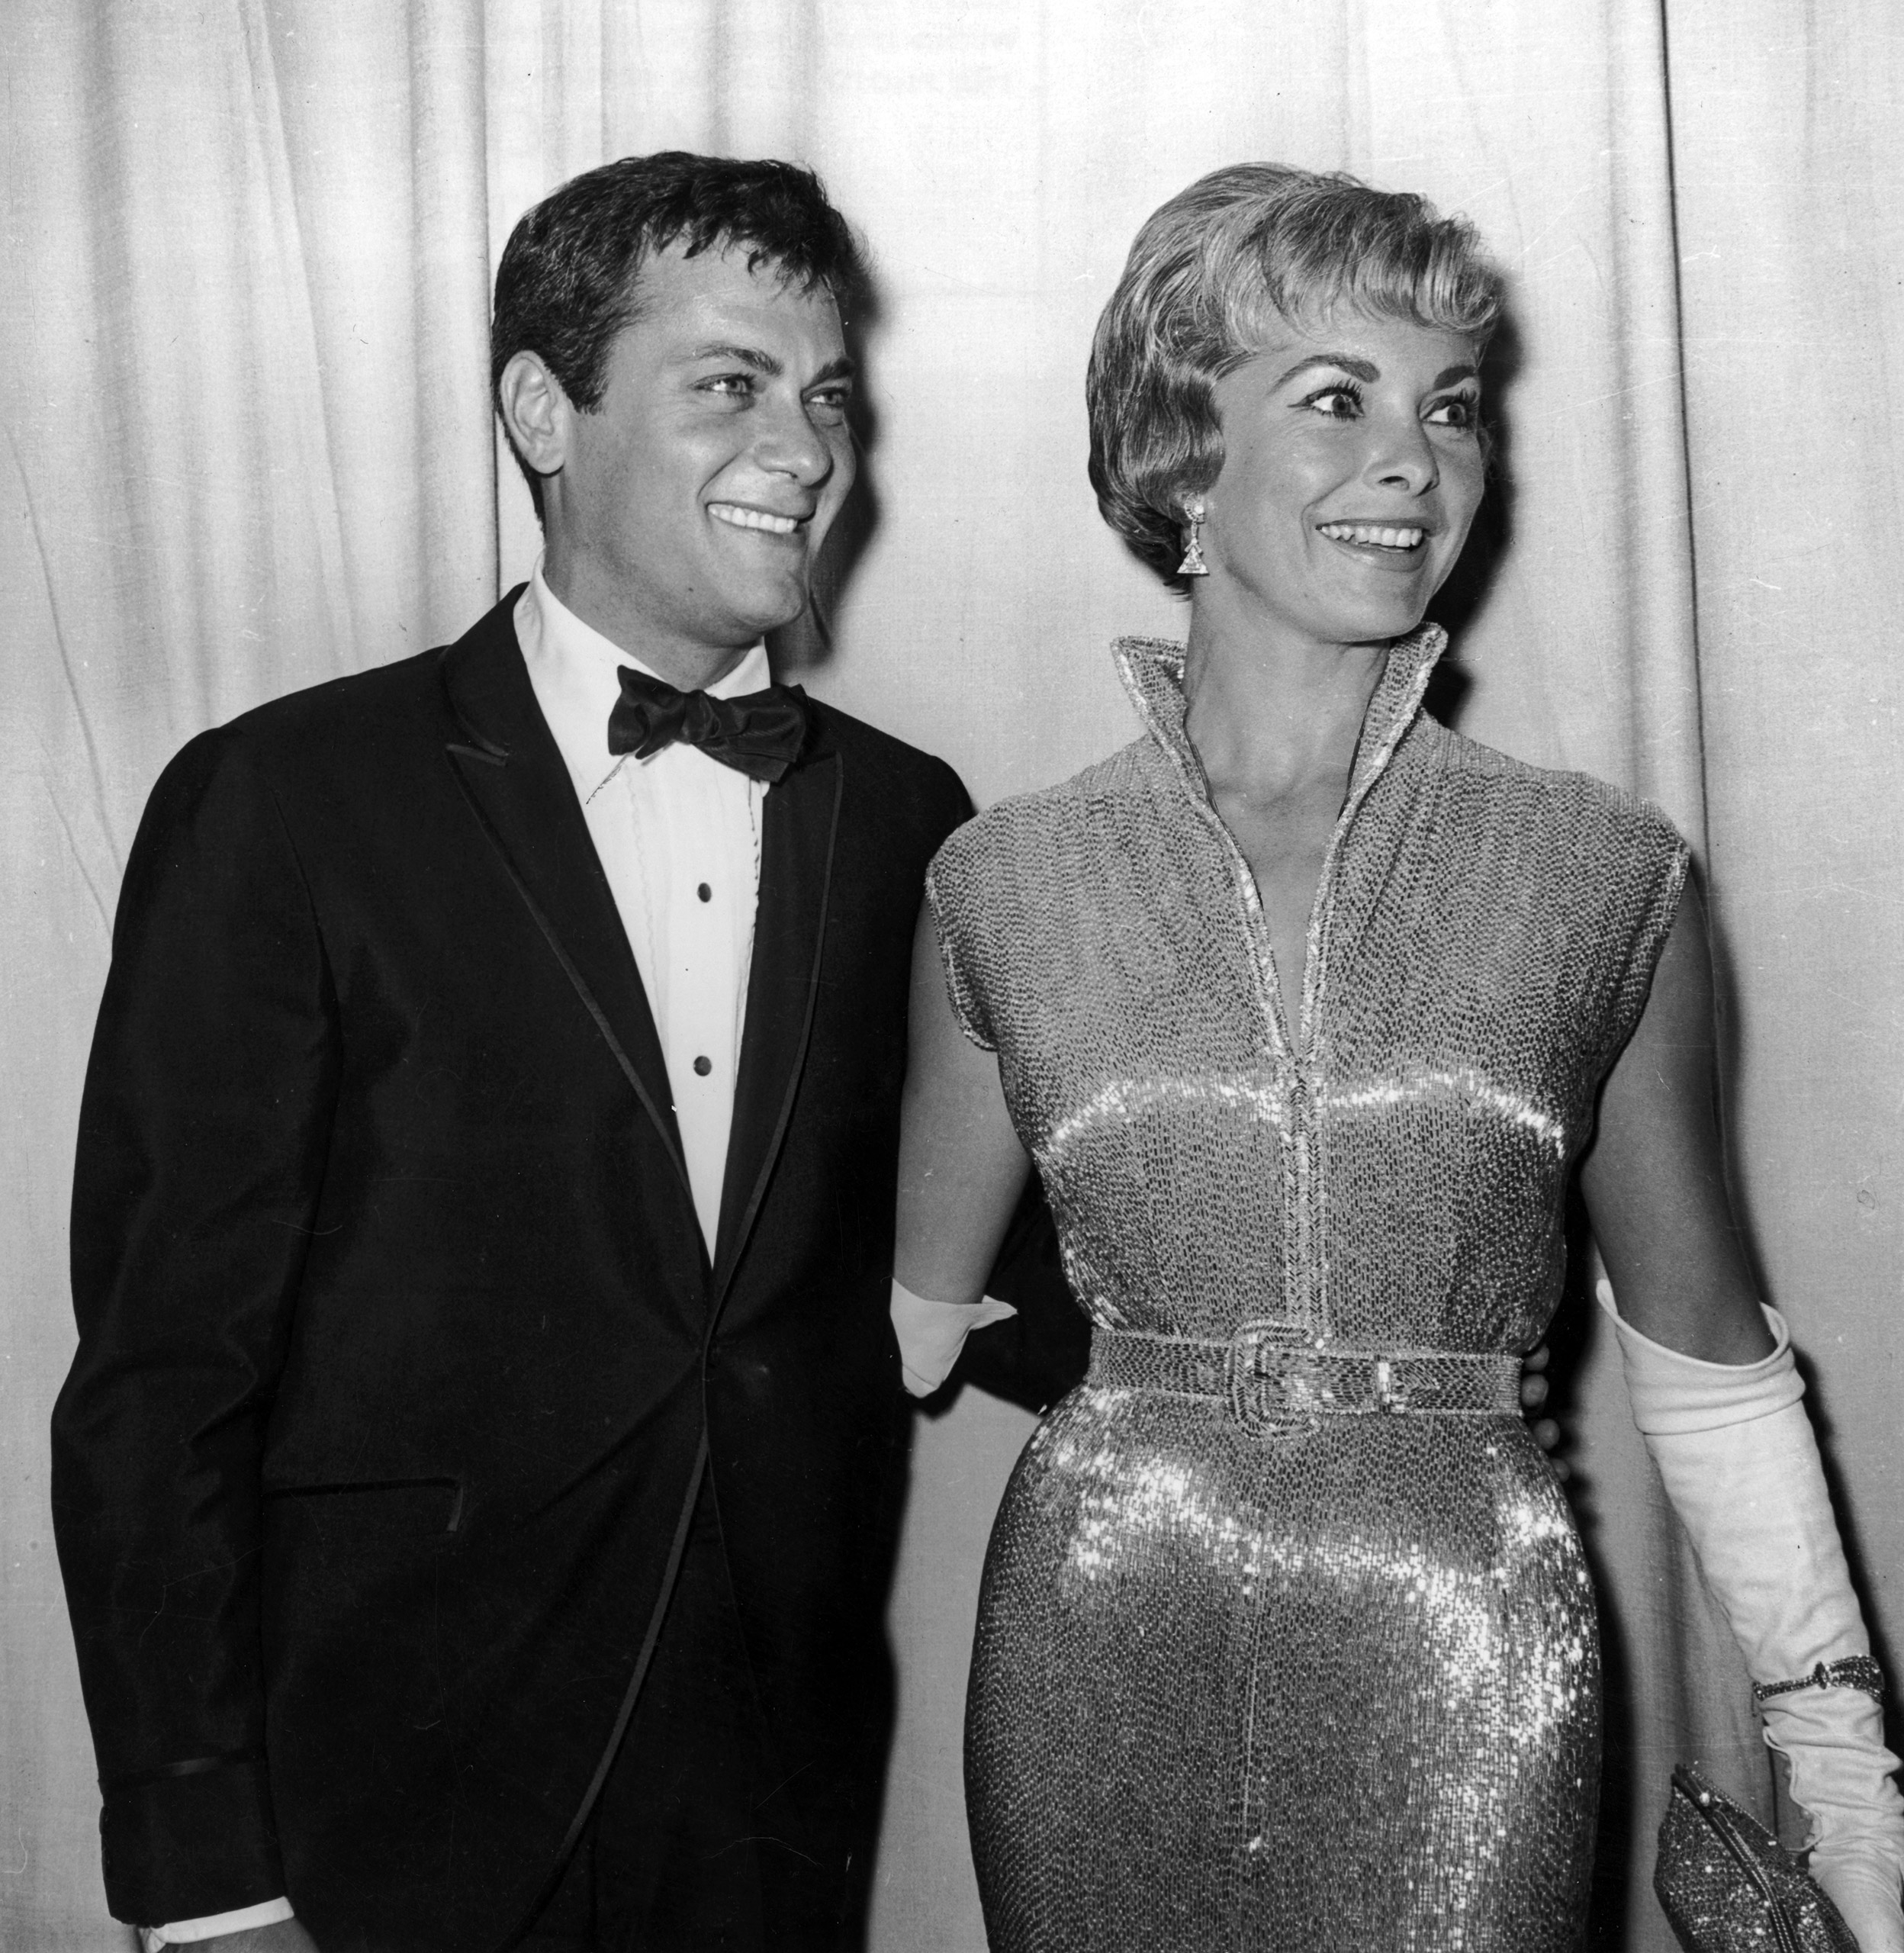 Tony Curtis and Janet Leigh at the Academy Awards, 1960.